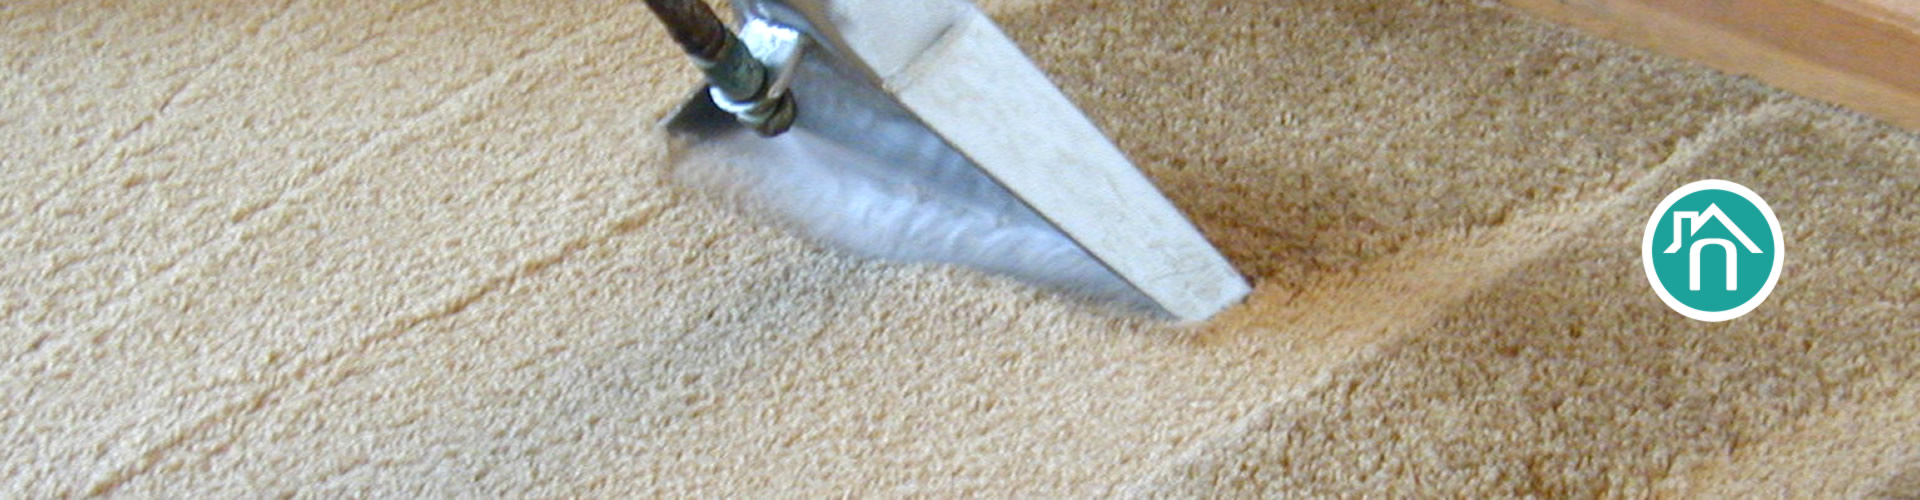 Professional Carpet & Upholstery Cleaning